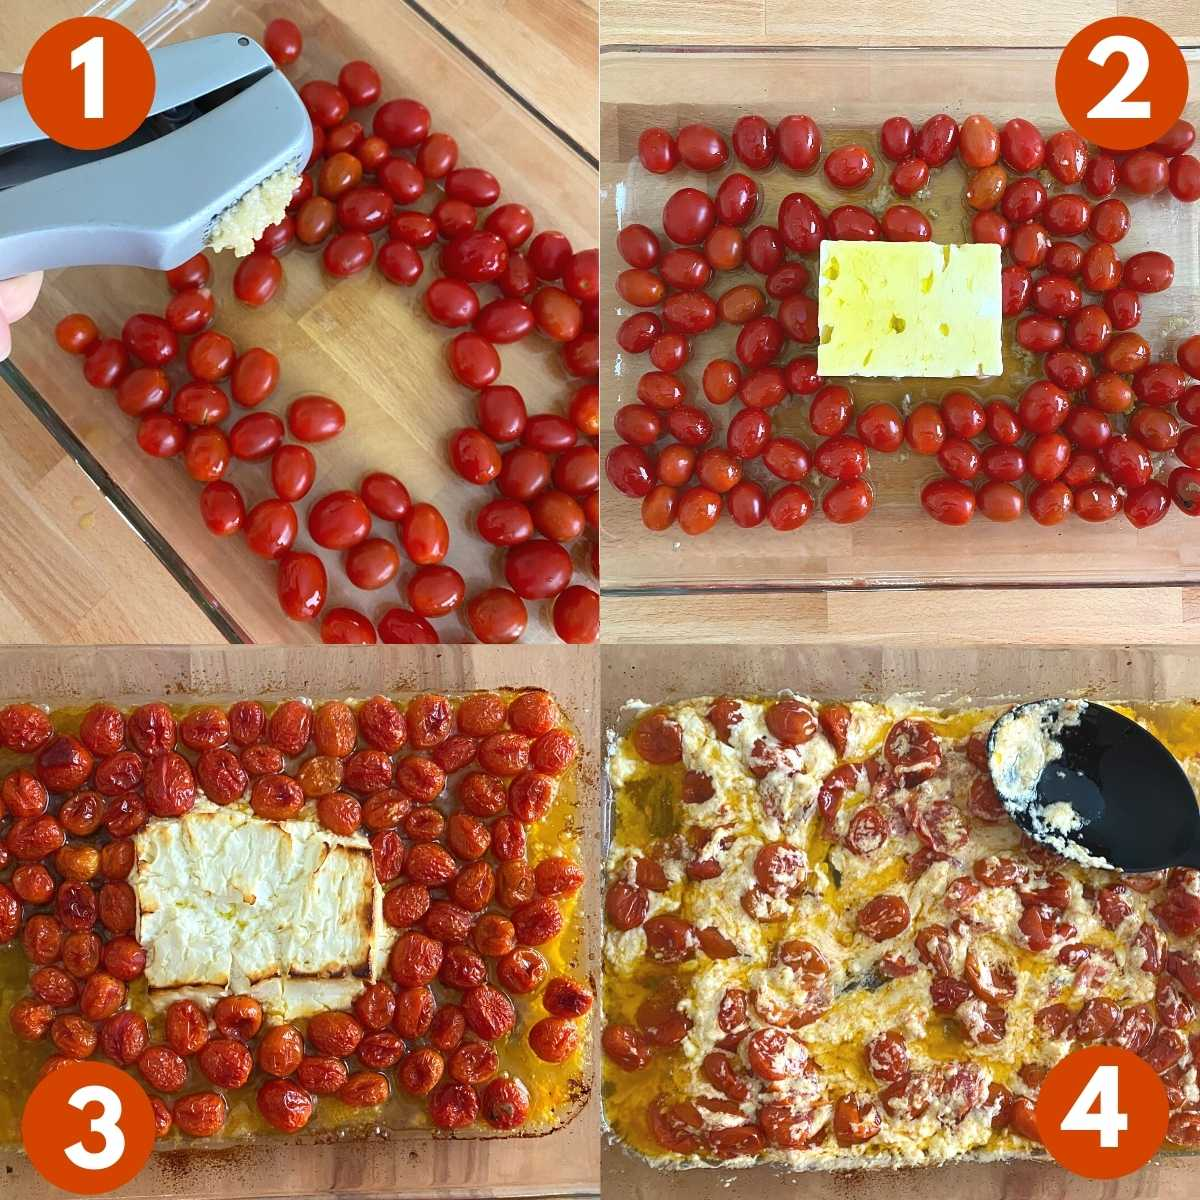 Numbered Collage with steps to make baked feta sauce with tomatoes.